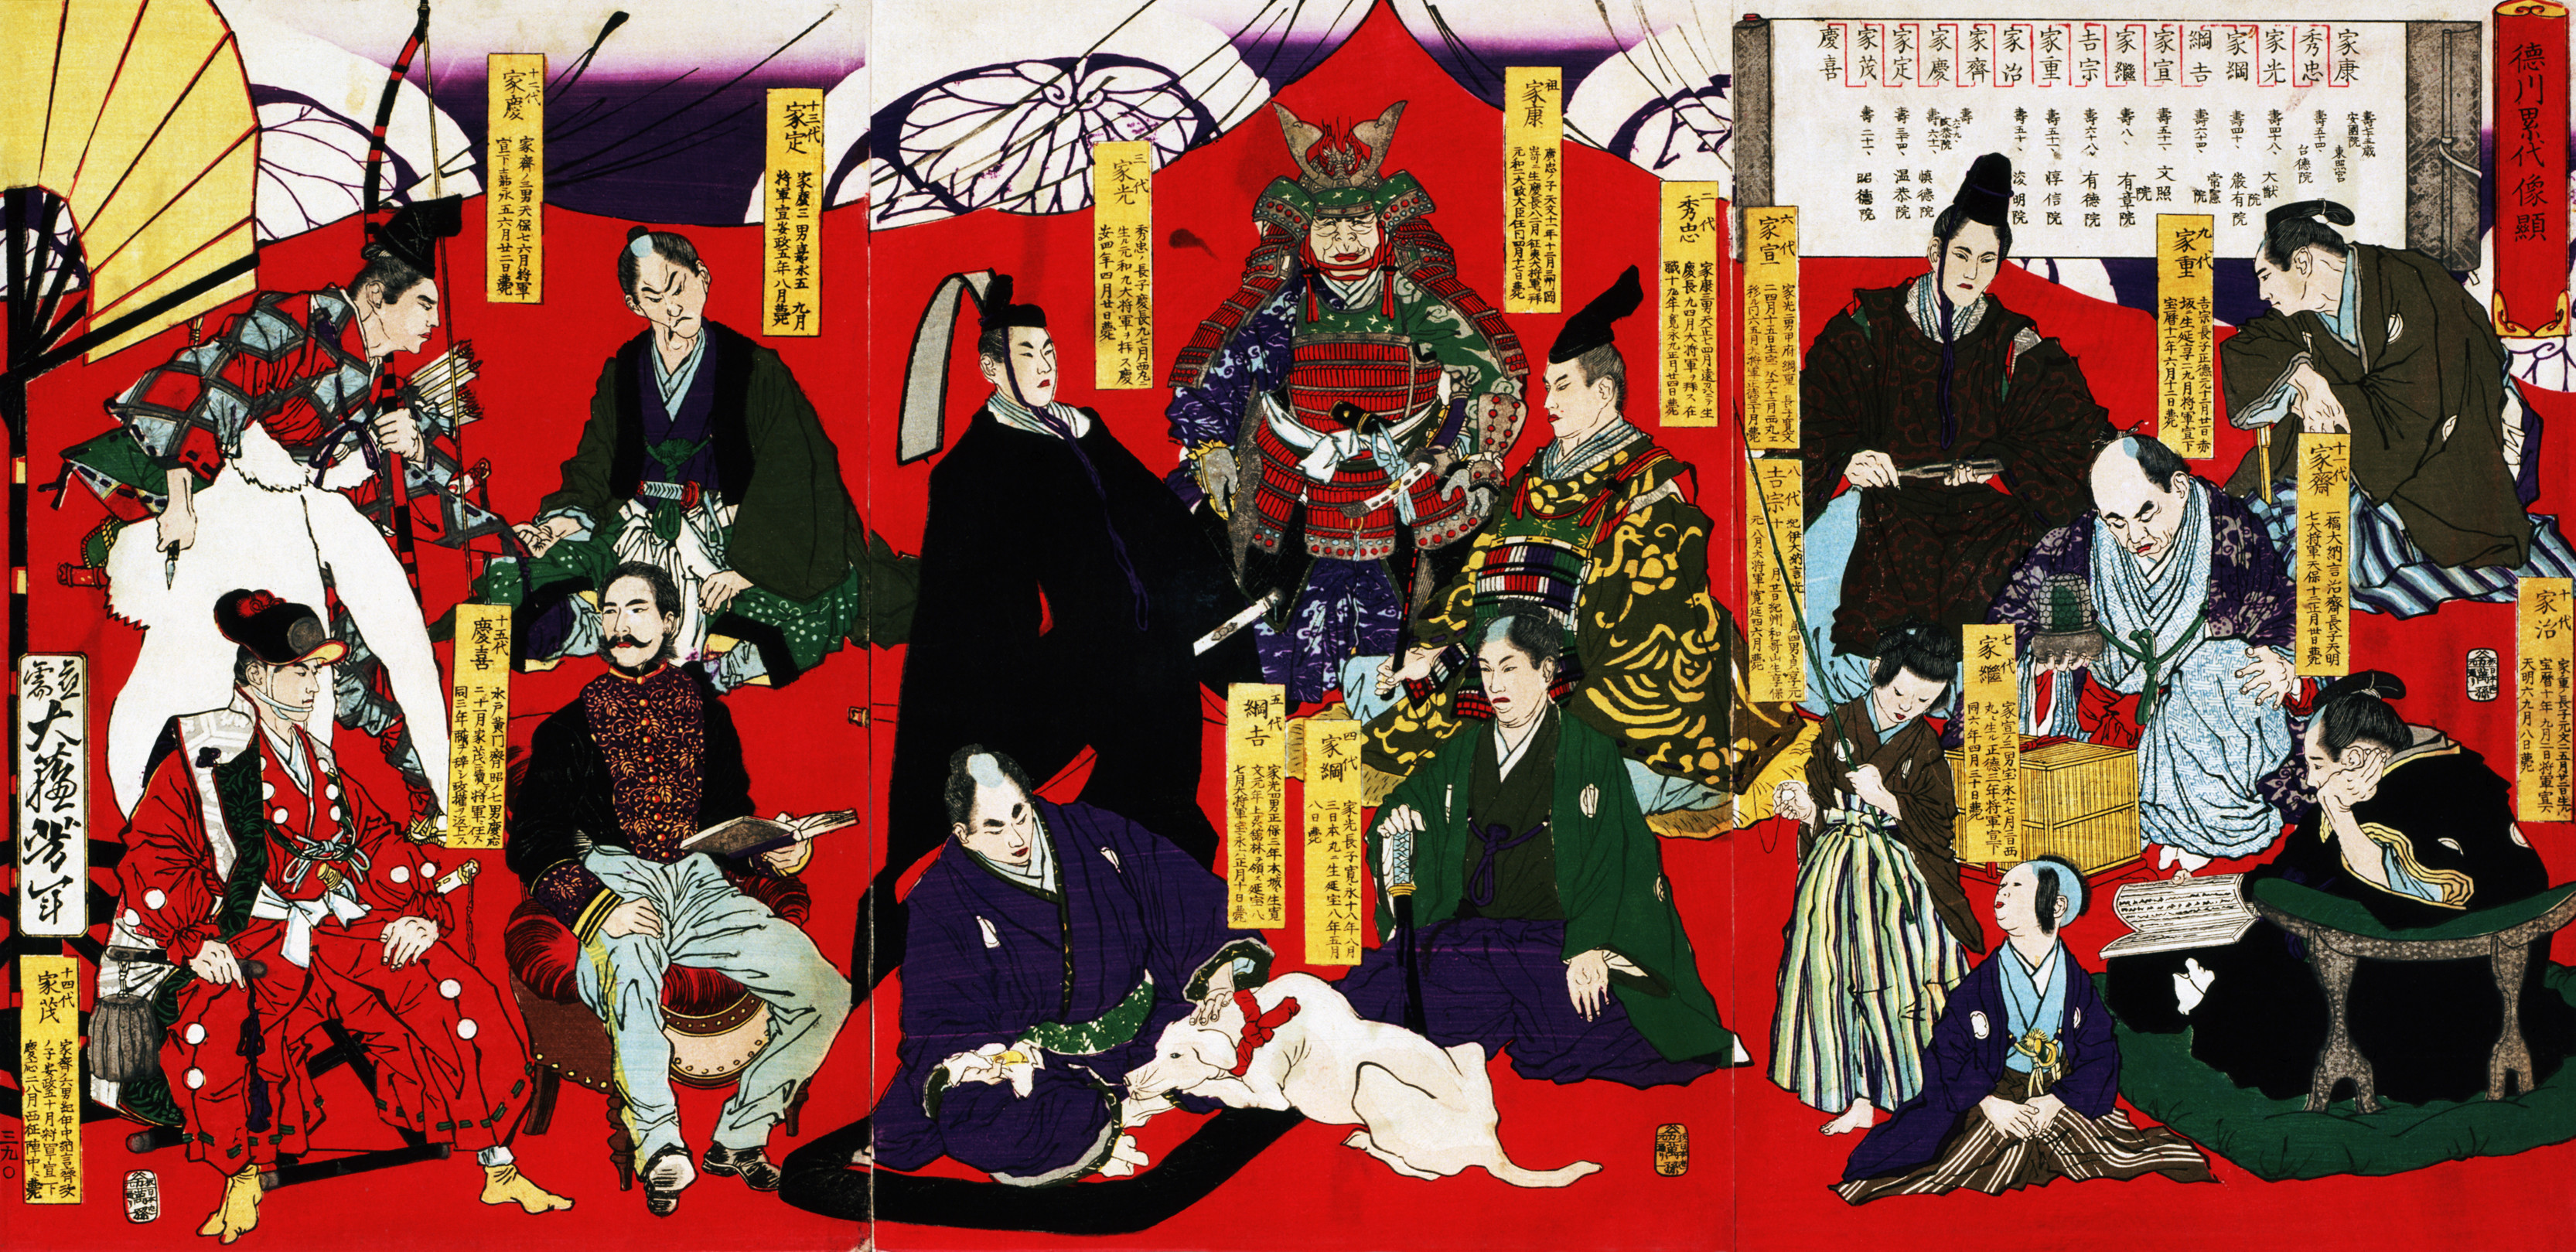 a history of the tokugawa shogunate a period in japanese history The tokugawa shogunate , also known as the tokugawa bakufu ( 徳川幕府 ) and the edo bakufu ( 江戸幕府 ) , was the last feudal japanese military government, which existed between 1600 and 1868 the head of government was the shogun , and each was a member of the tokugawa clan the tokugawa shogunate ruled from edo castle and the years.